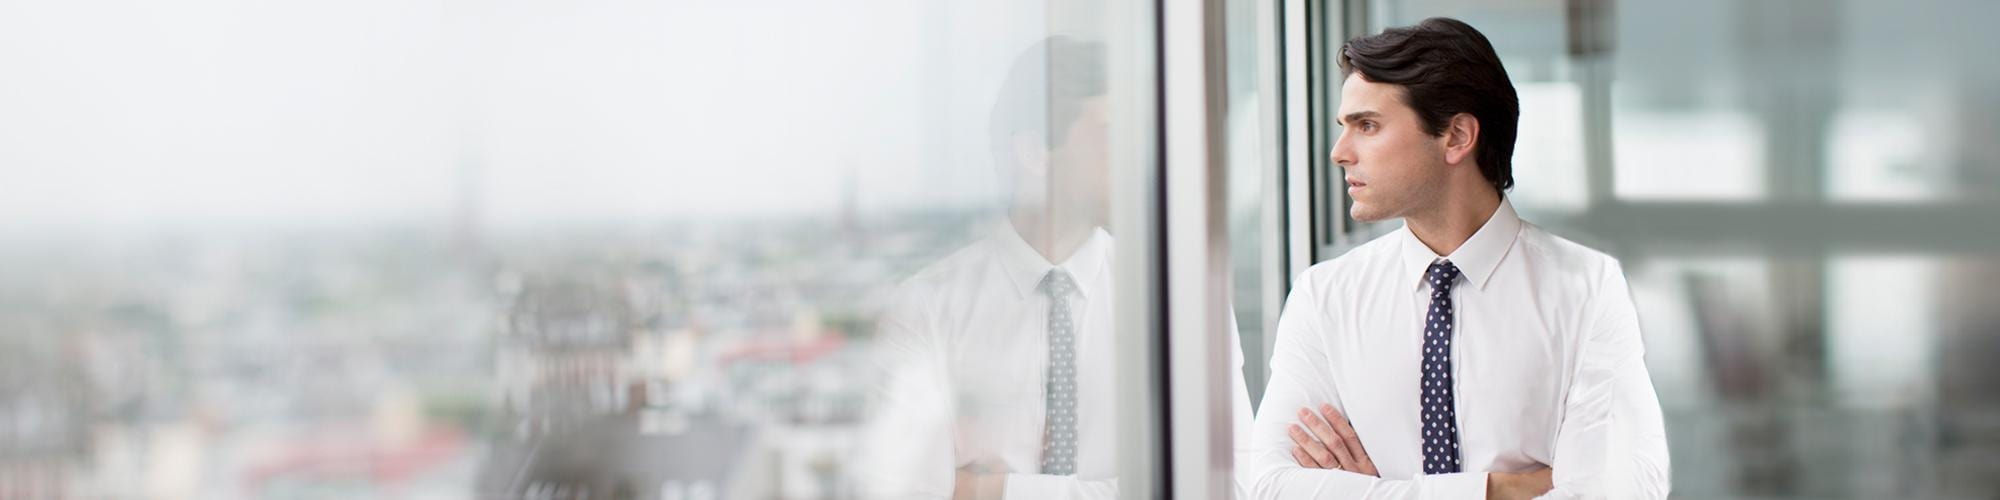 Man wearing white shirt and tie looking out a window